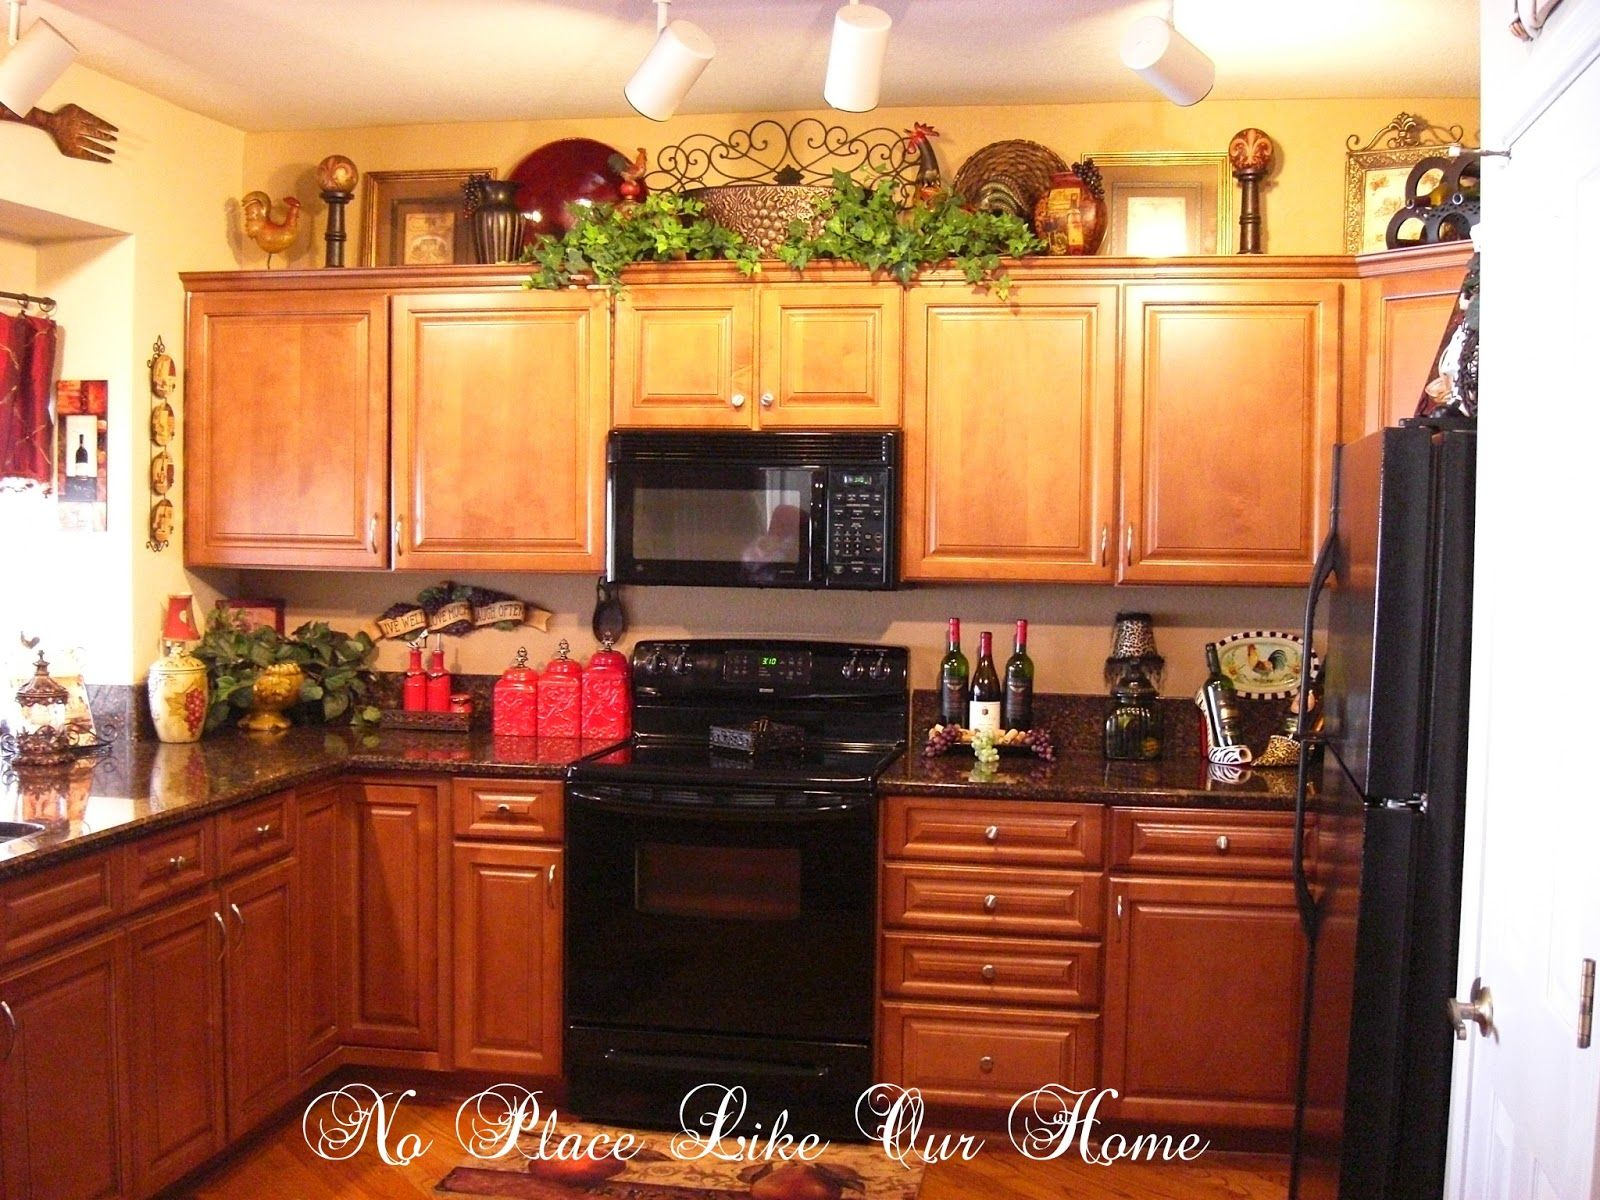 decorating above kitchen cabinets tuscany | Here's a closer look at on under kitchen sink cabinet ideas, space above kitchen cabinet ideas, top of cabinets for kitchen decorating ideas, kitchen cupboard decorating ideas, kitchen cabinet backsplash ideas, shabby chic hutch ideas, laundry room ideas, decorating above kitchen cabinet ideas, kitchen cabinet painting ideas, decorate top of kitchen cabinets ideas, kitchen cabinet top decor ideas,